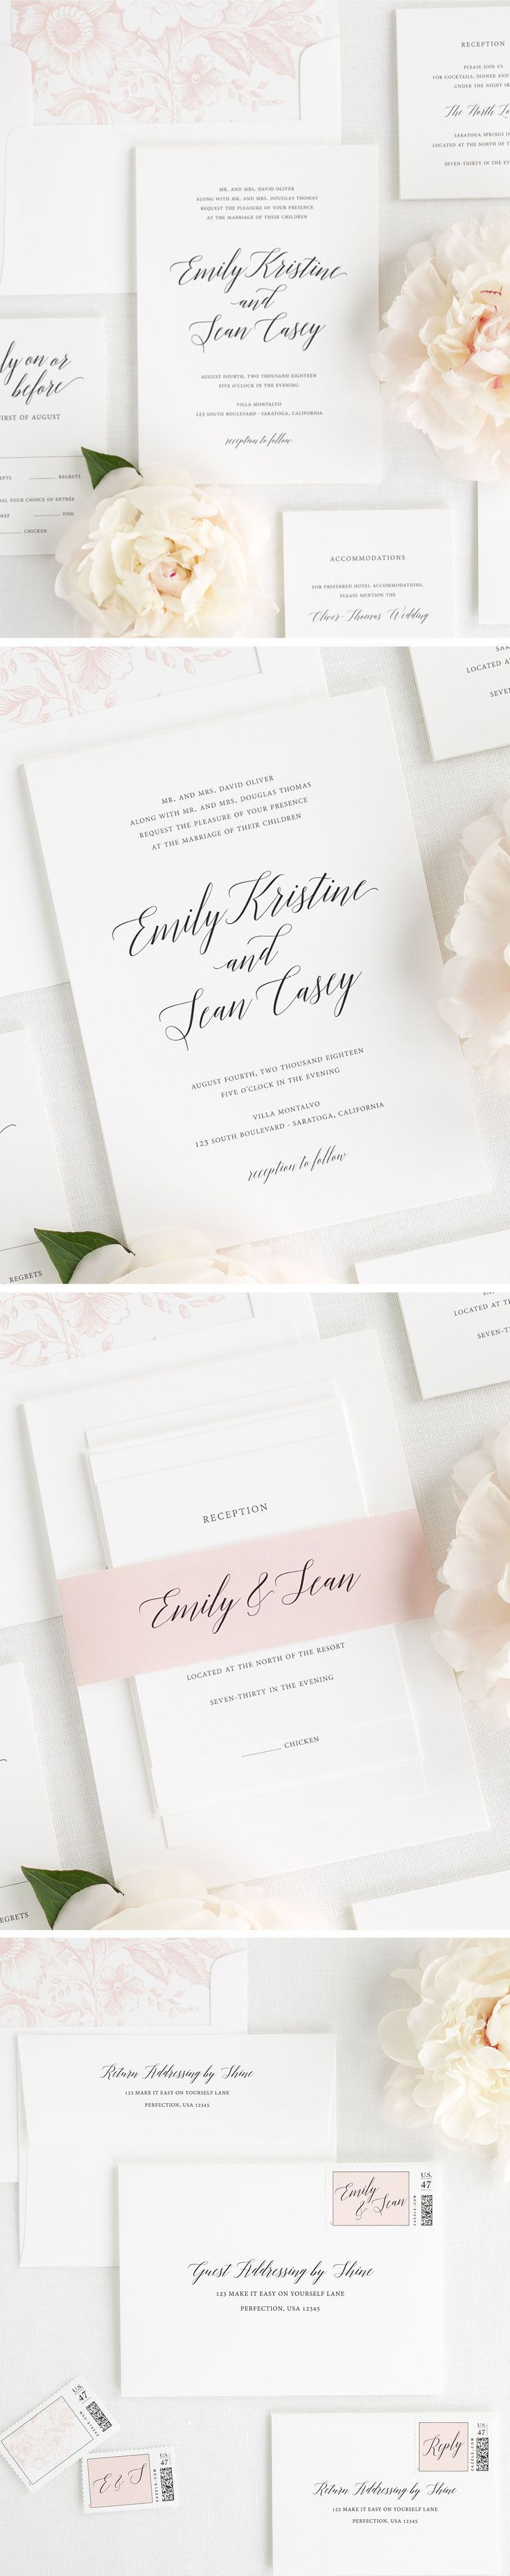 178 Best Calligraphy Wedding Stationery Images On Pinterest